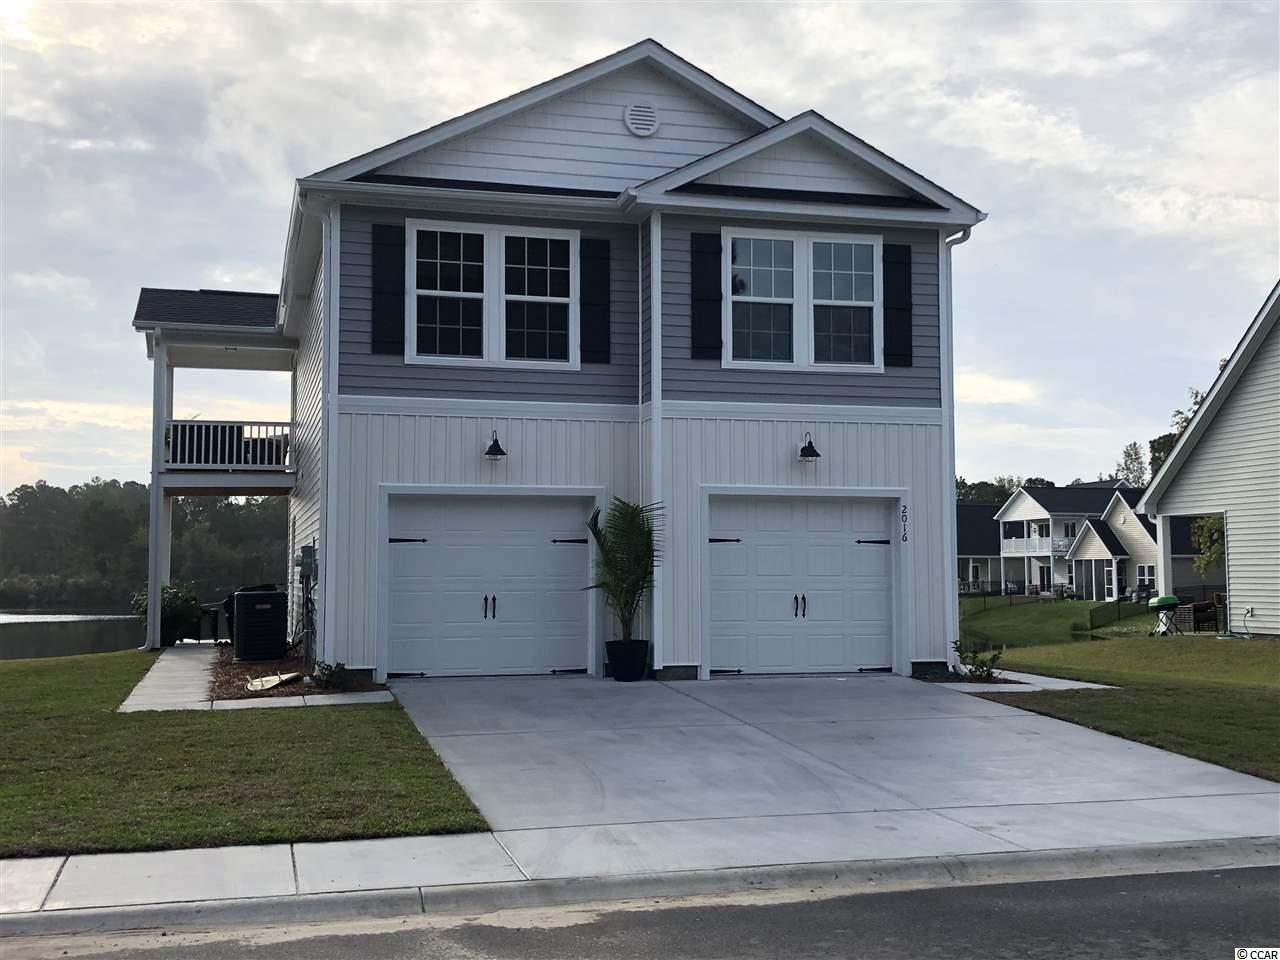 There are only 3 new homes remaining, don't miss out! This community has back or side porch views that over look a beautiful 28 acre lake. The home comes with white cabinets, double vanity in master bath, granite counter tops, upgraded luxury vinyl plank flooring, and vaulted ceilings. Low HOAs and conveniently located with easy access to Murrells Inlet, Garden City or Surfside Beach, Hwy. 17 business or bypass and 707. Pictures and virtual tour are representations from a similar home. Features and selections may vary.